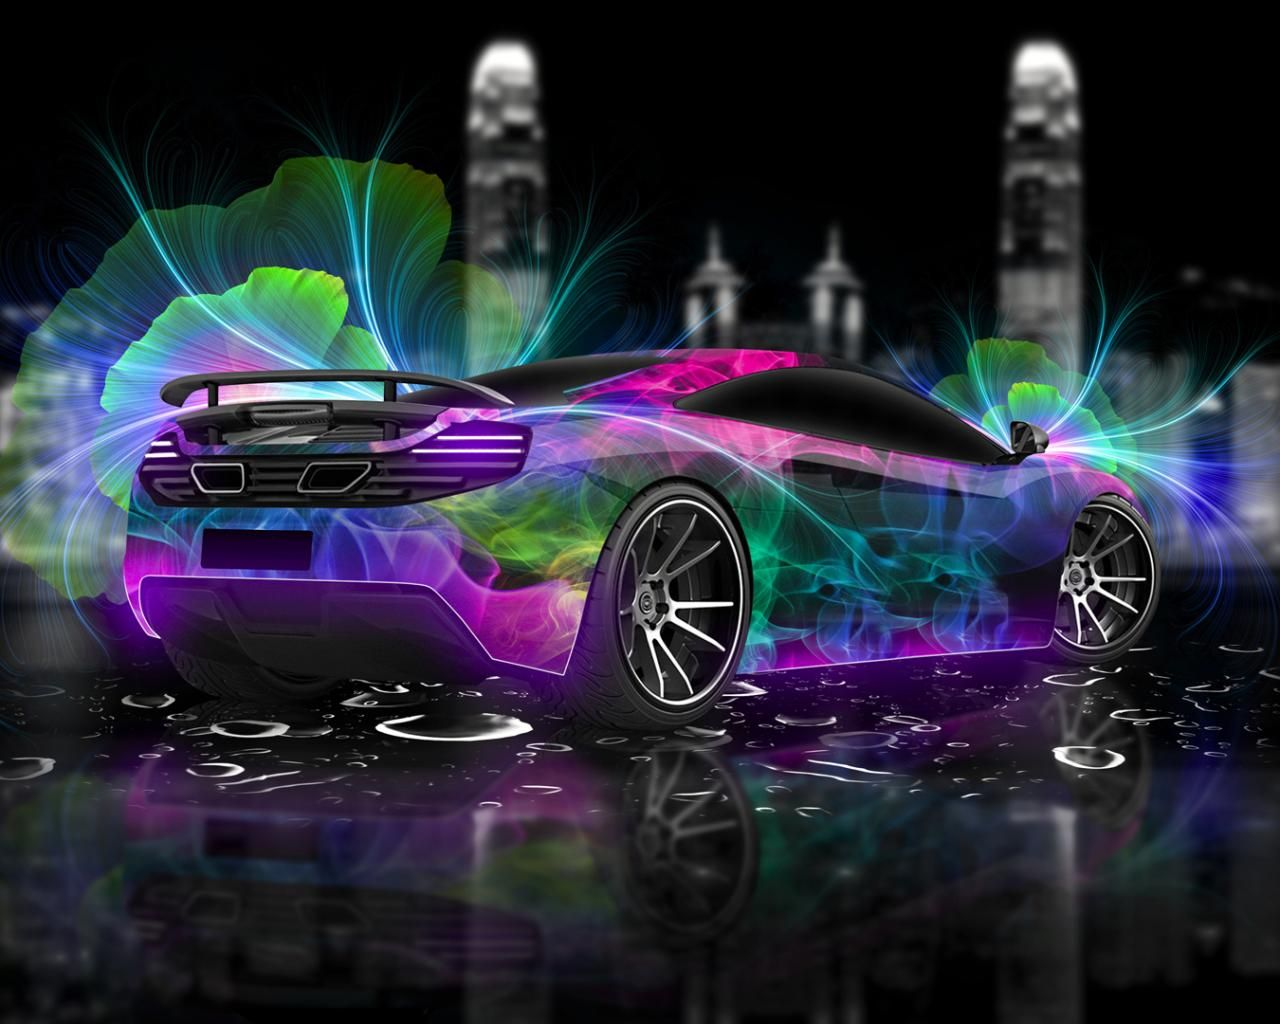 Cool Wallpapers Desktop Backgrounds Cool Wallpapers Cars Cool Car Backgrounds Sports Car Wallpaper